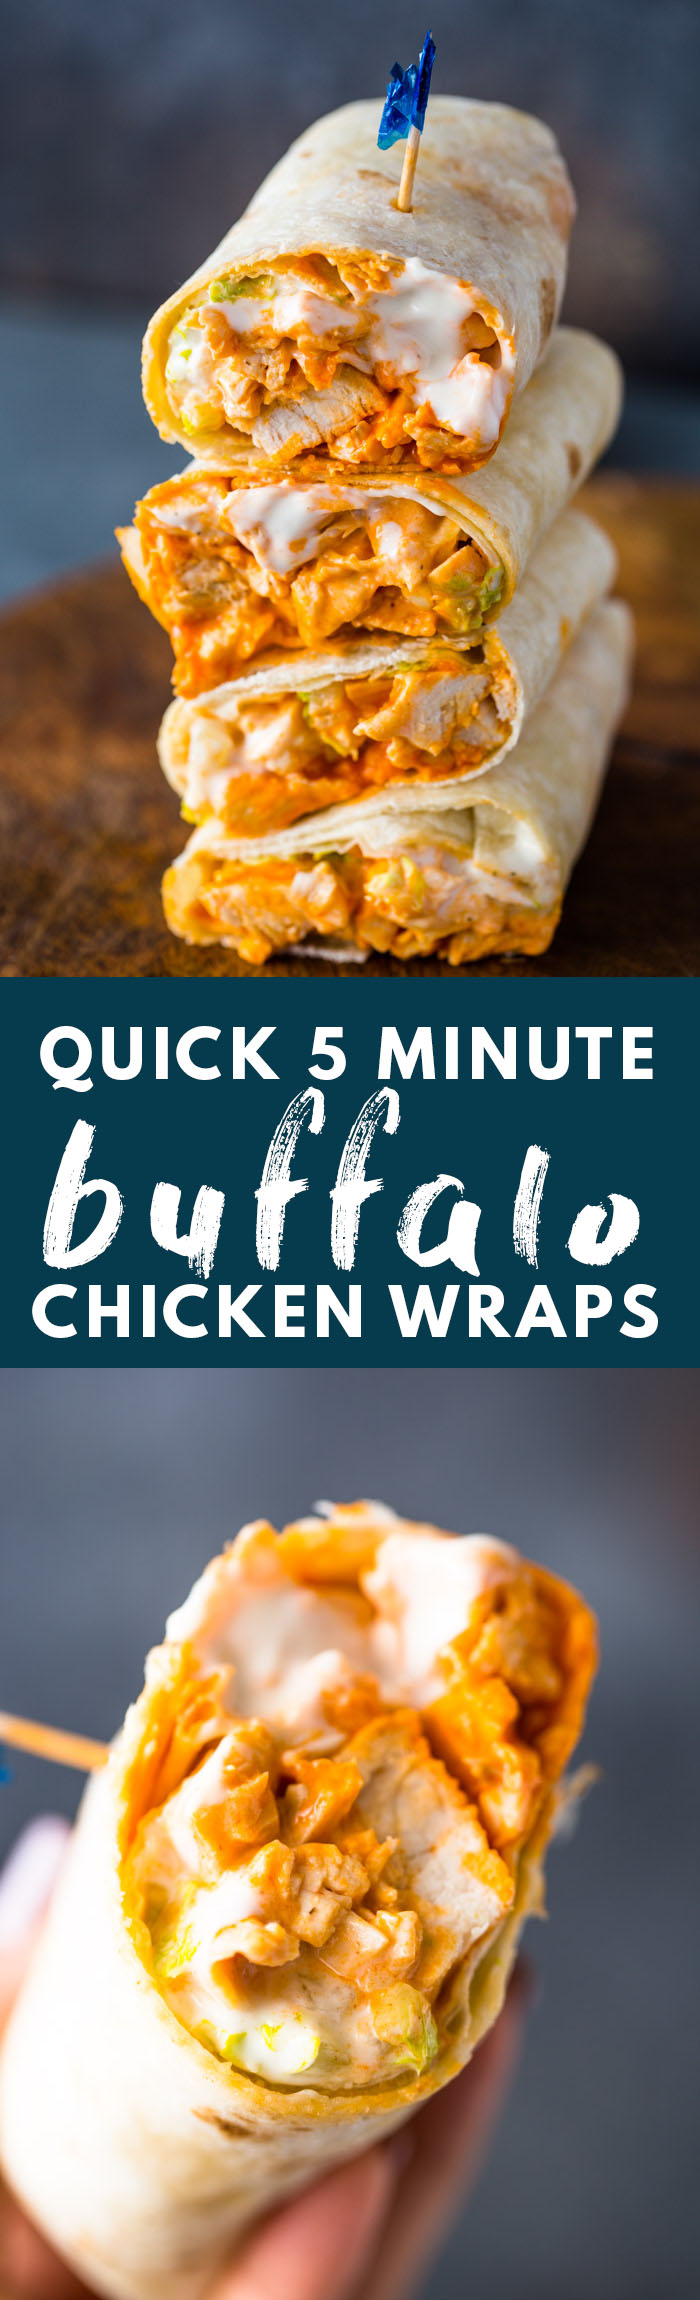 5 Minute Buffalo Chicken Wraps Gimme Delicious